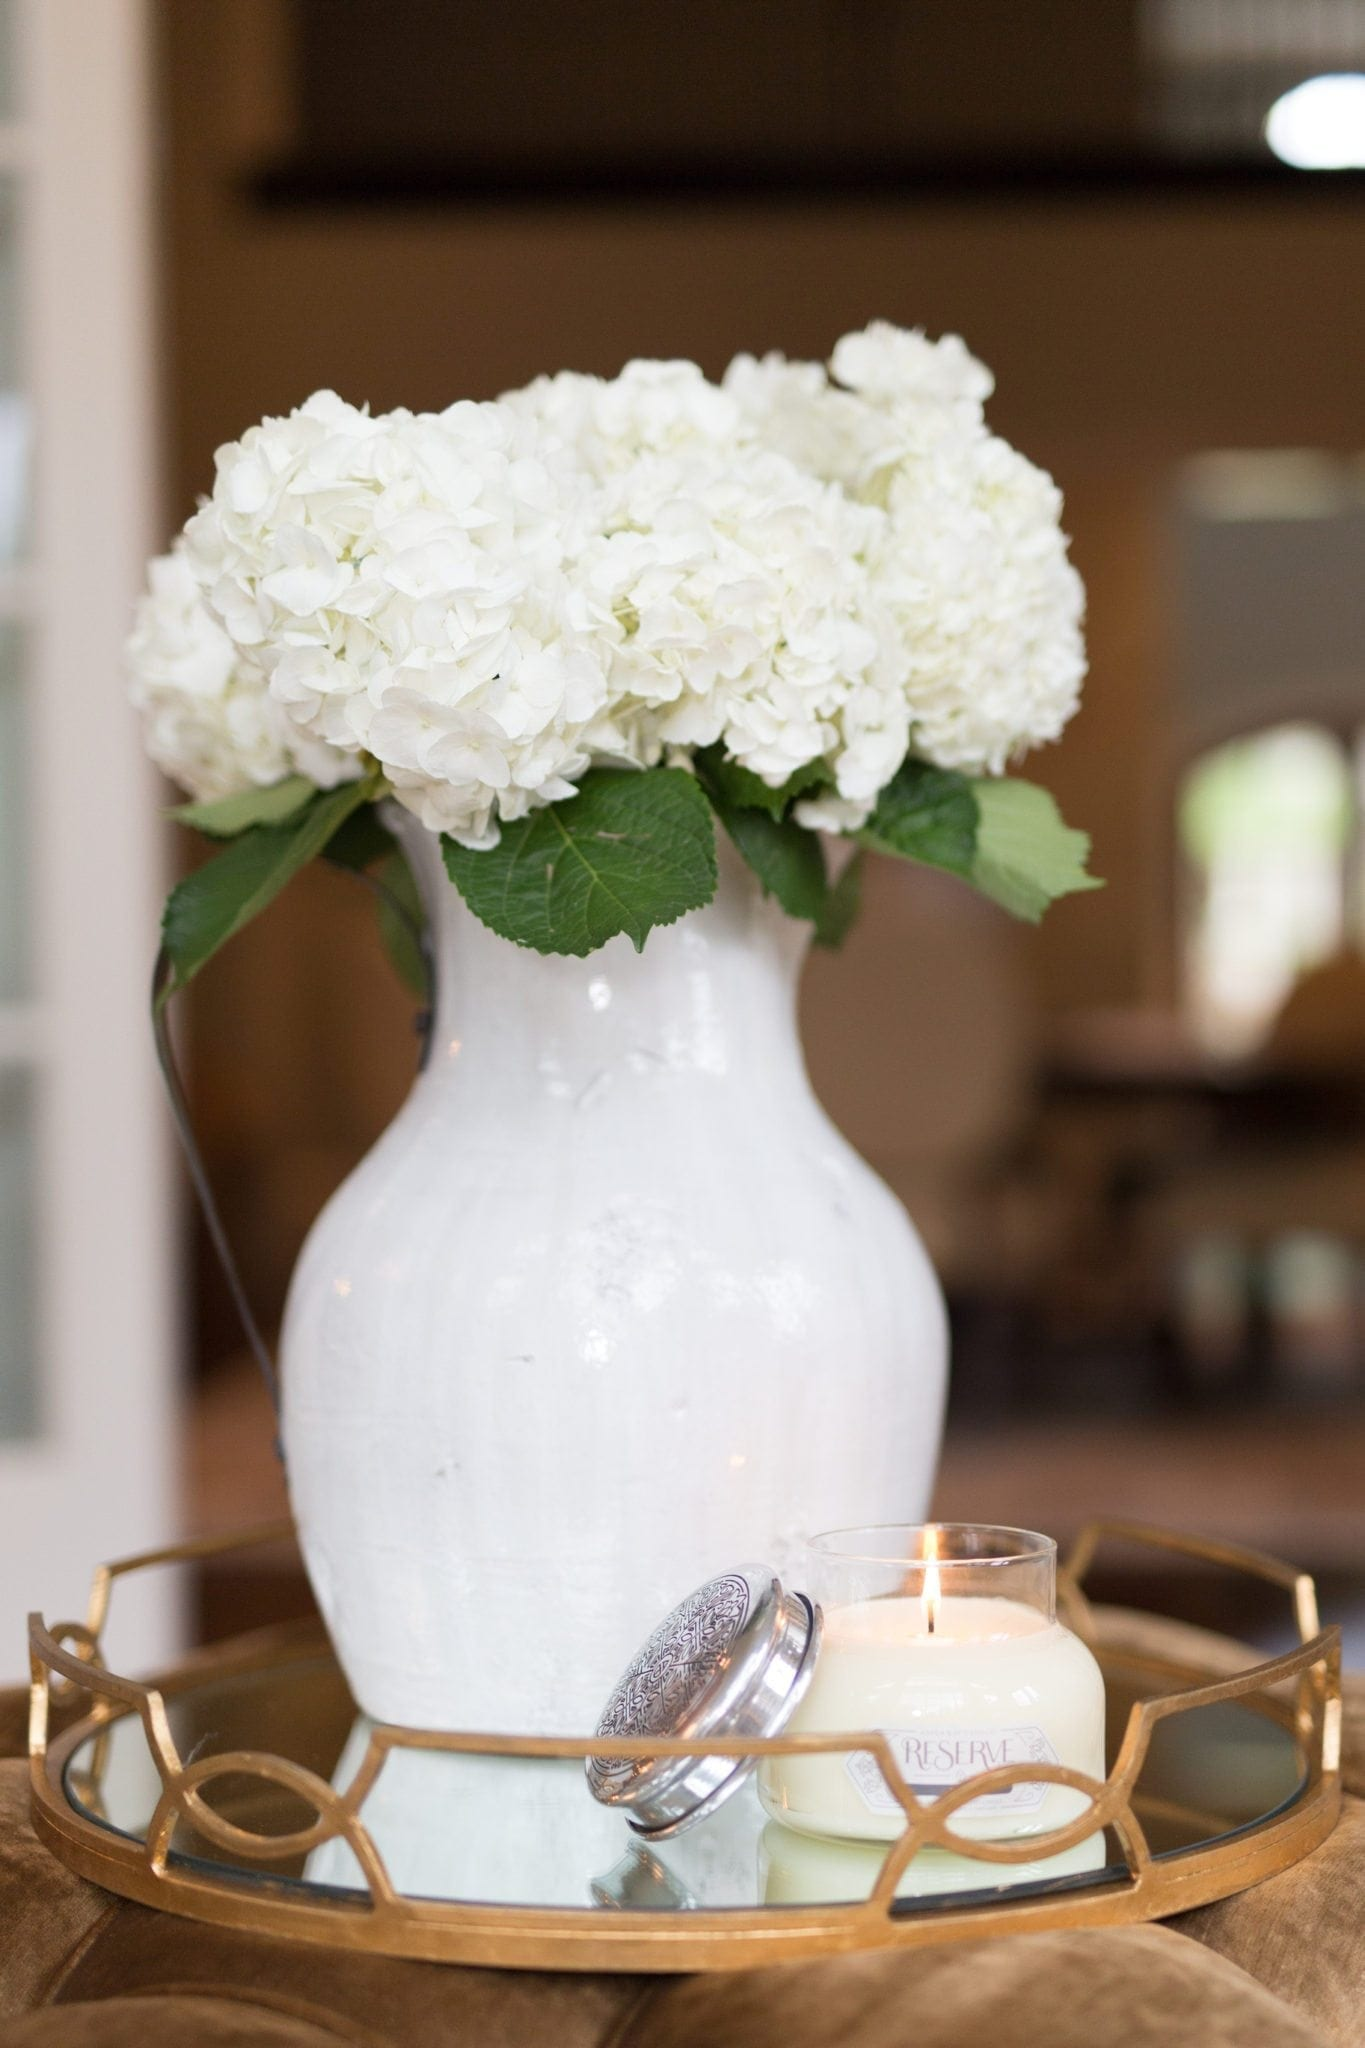 Learn to keep flower arrangements fresh. White ceramic urn from Pottery Barn filled with white hydrangea. Tricks to keep flowers alive longer.